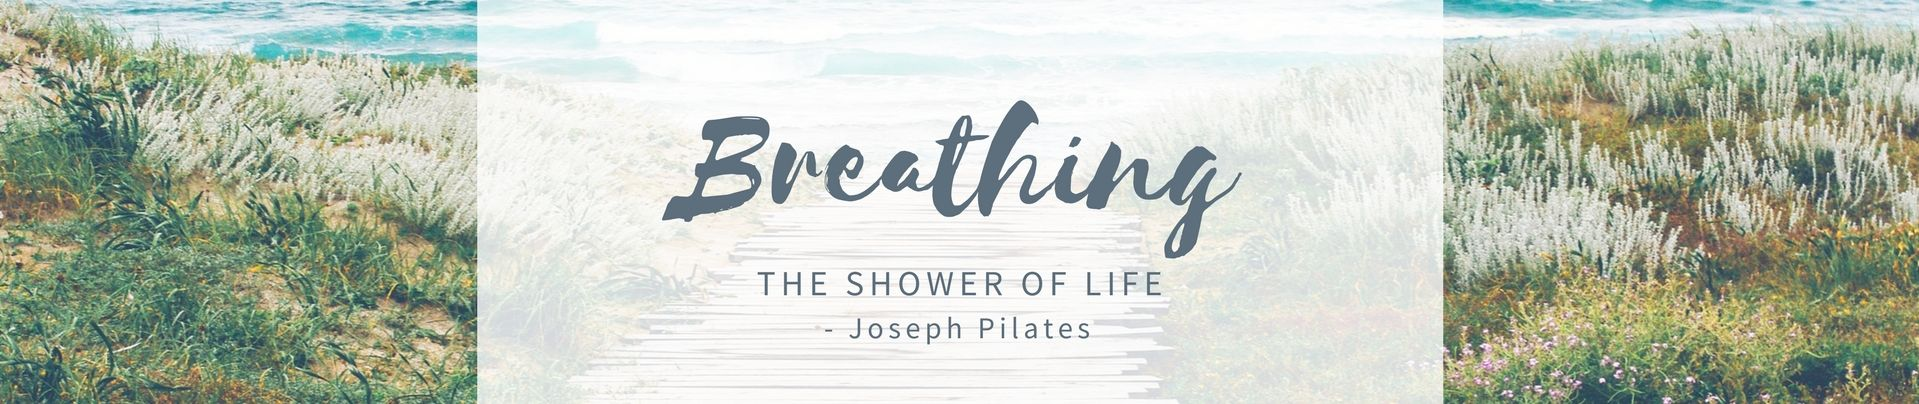 Breathing - the Shower of Life (30 minutes read)